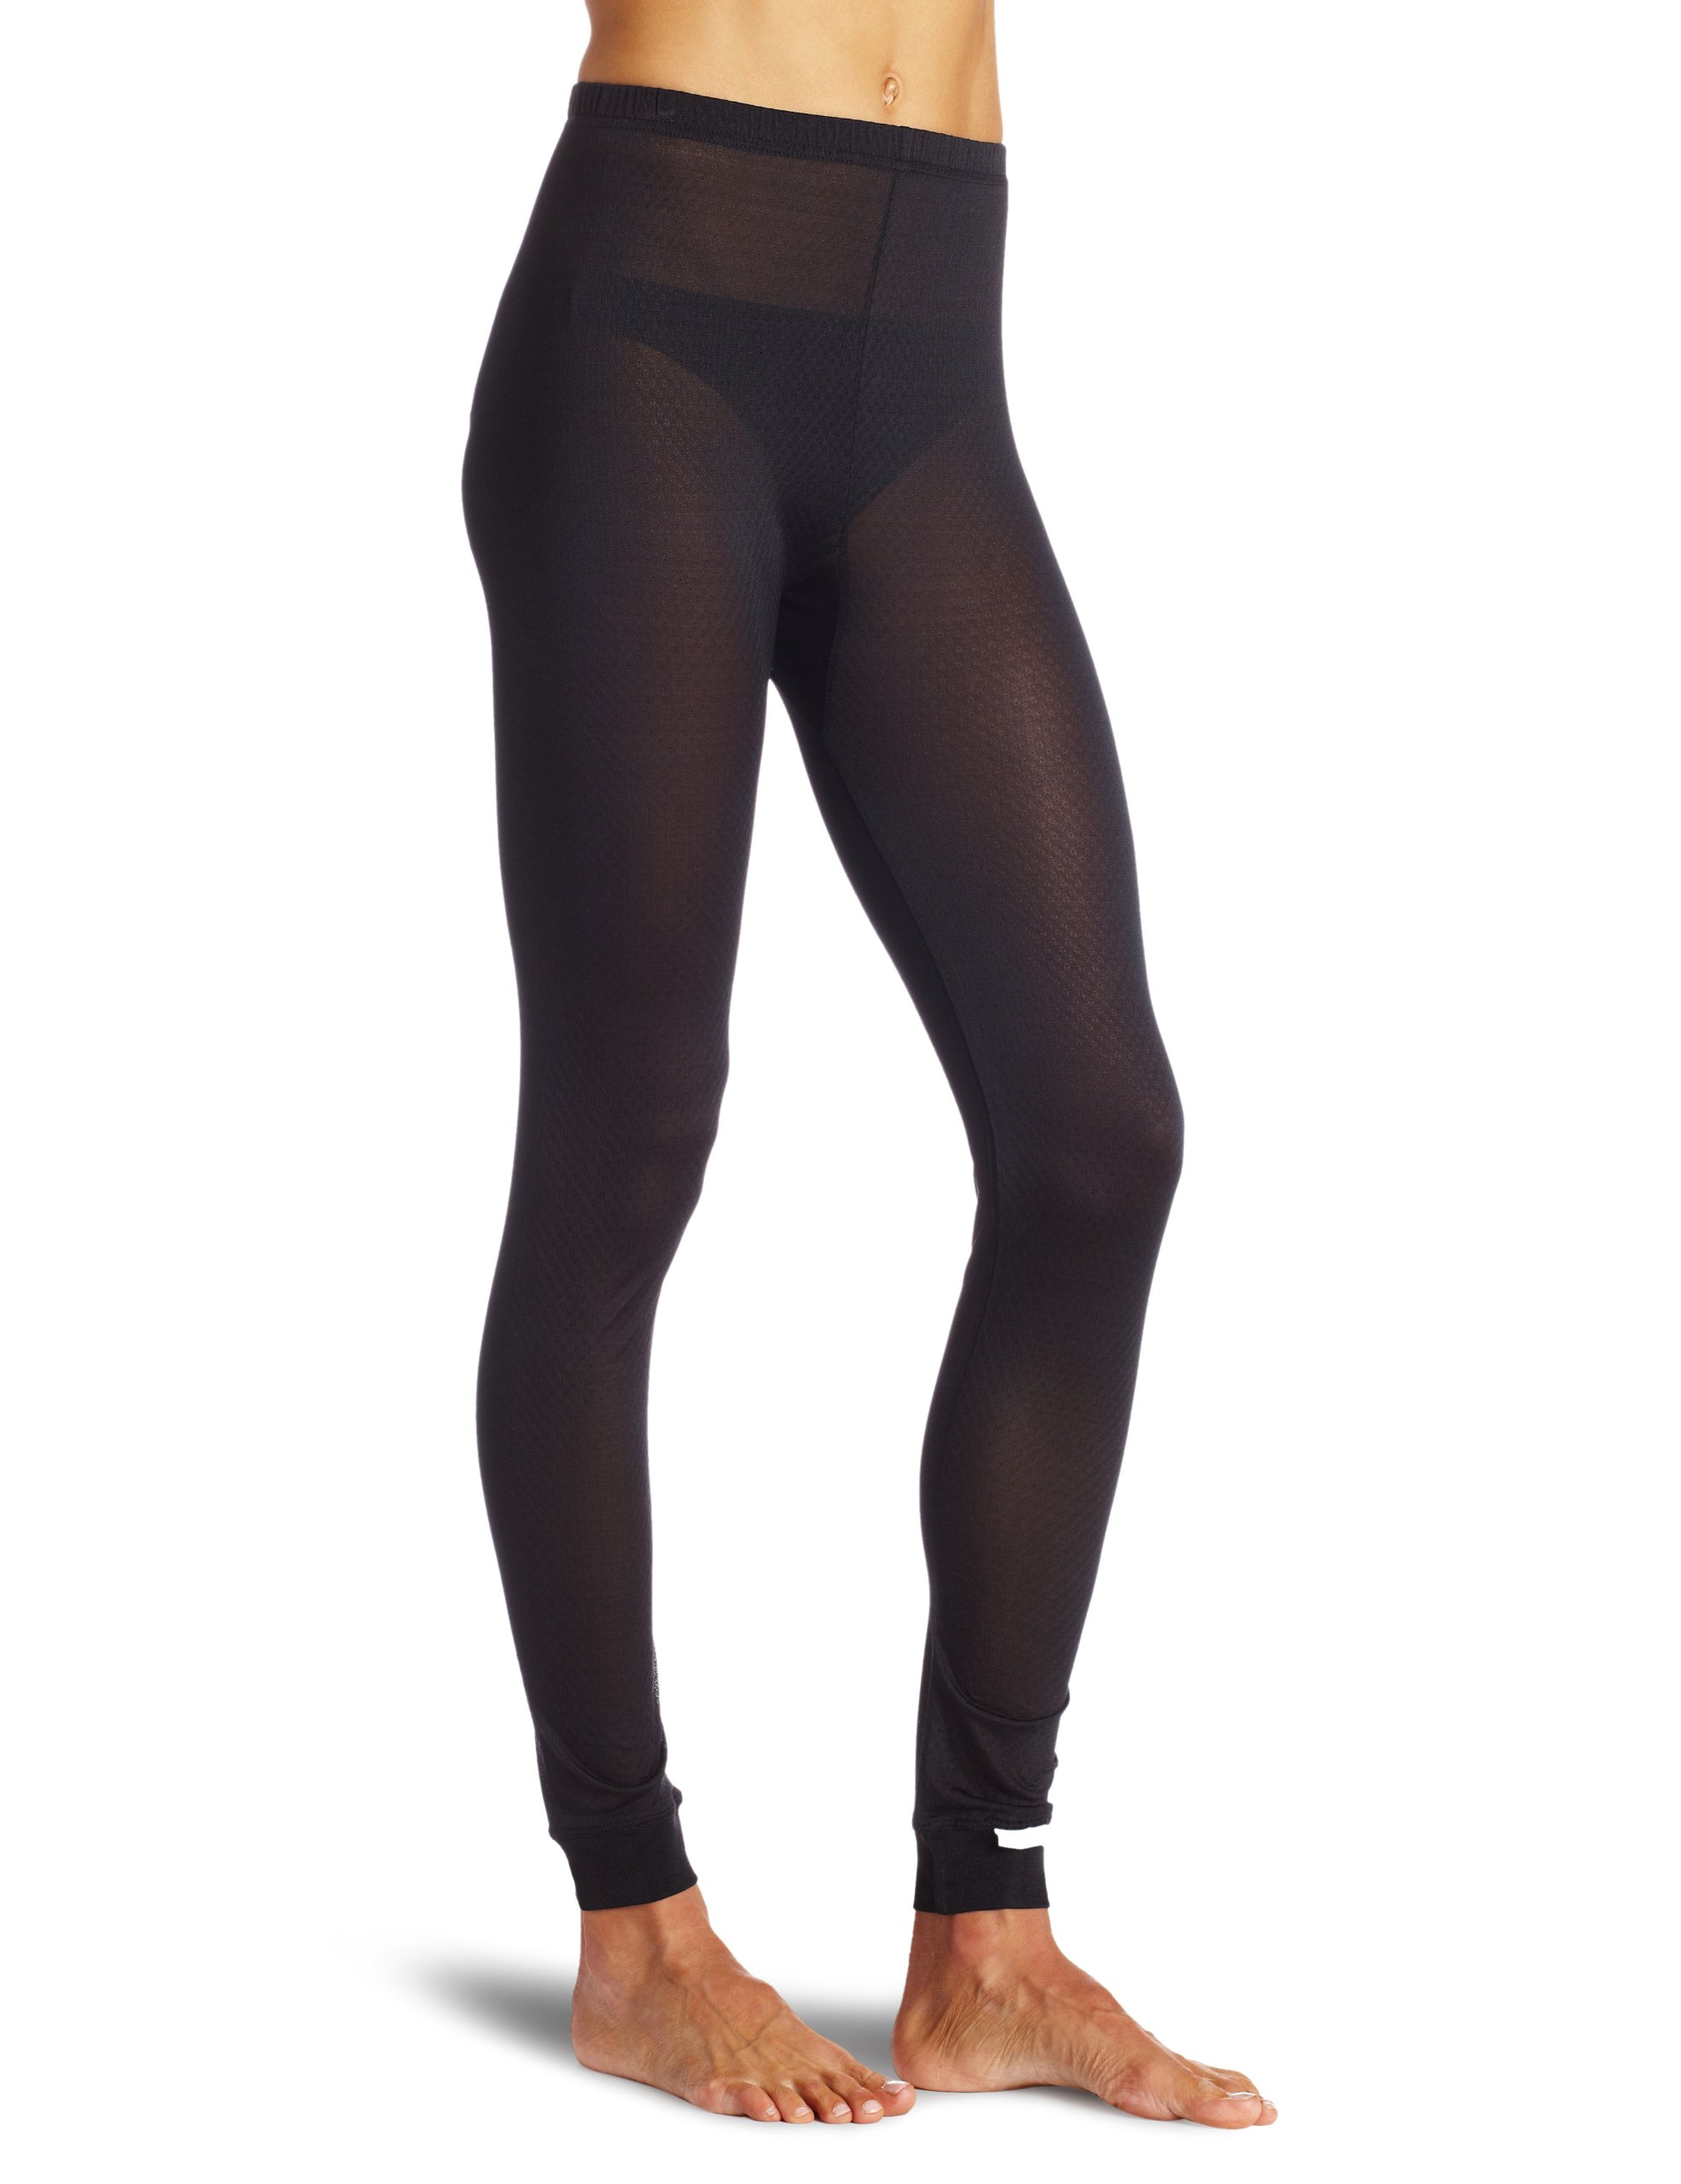 Terramar Women's Thermasilk Pointelle Pant (Black, Small) by Terramar (Image #1)